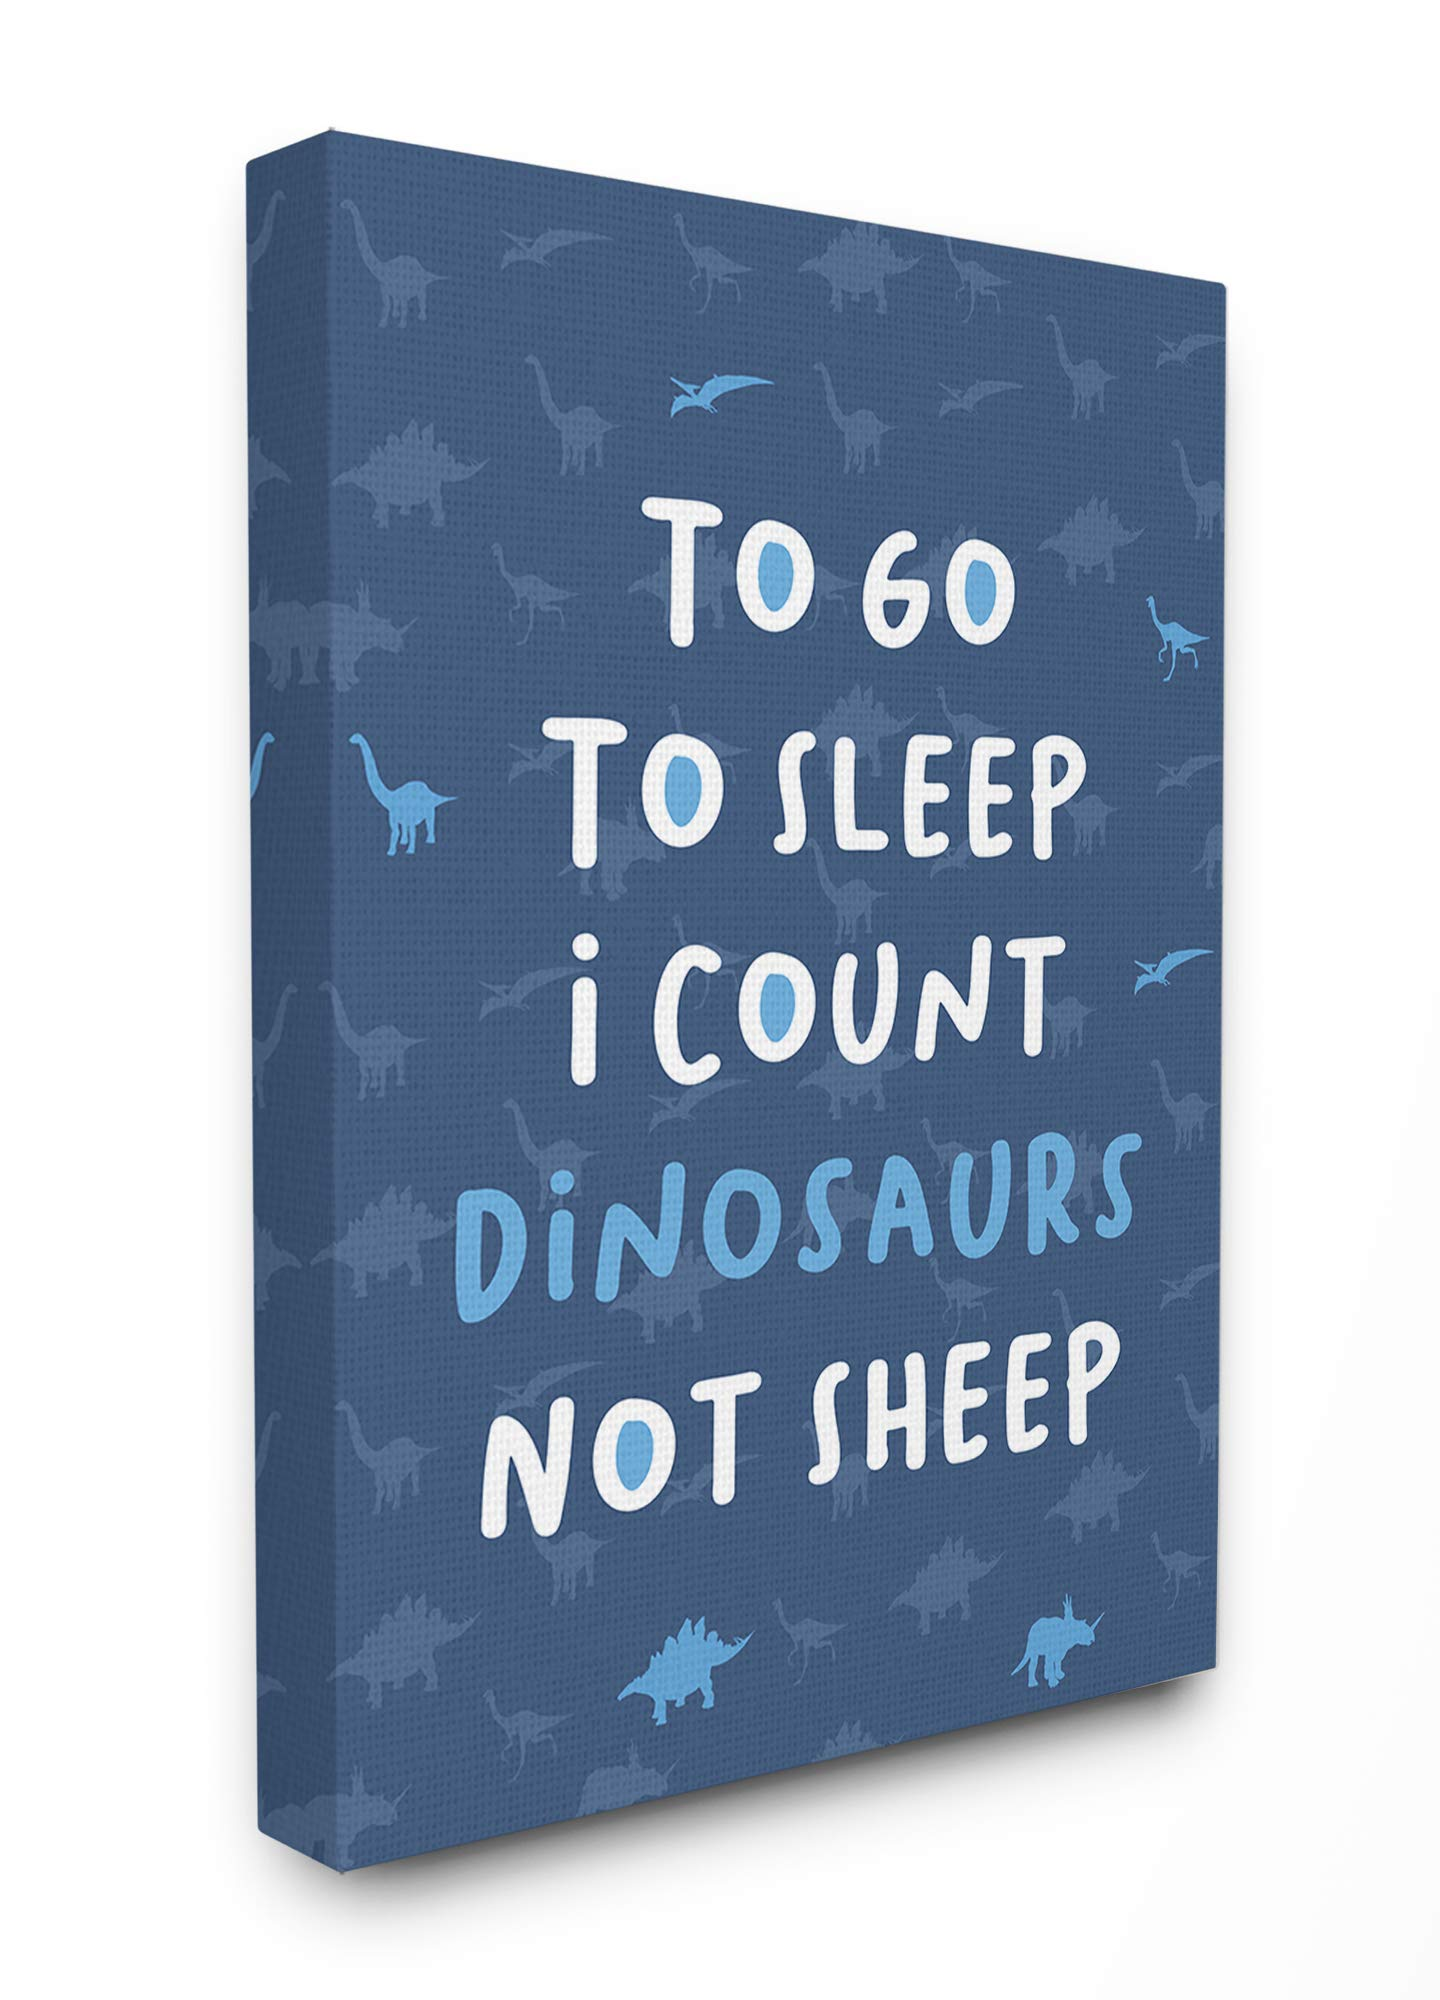 The Kids Room by Stupell to to Go to Sleep I Count Dinosaurs Not Sheep Blue Typography Stretched Canvas Wall Art, 24x30, Multi-Color by The Kids Room by Stupell